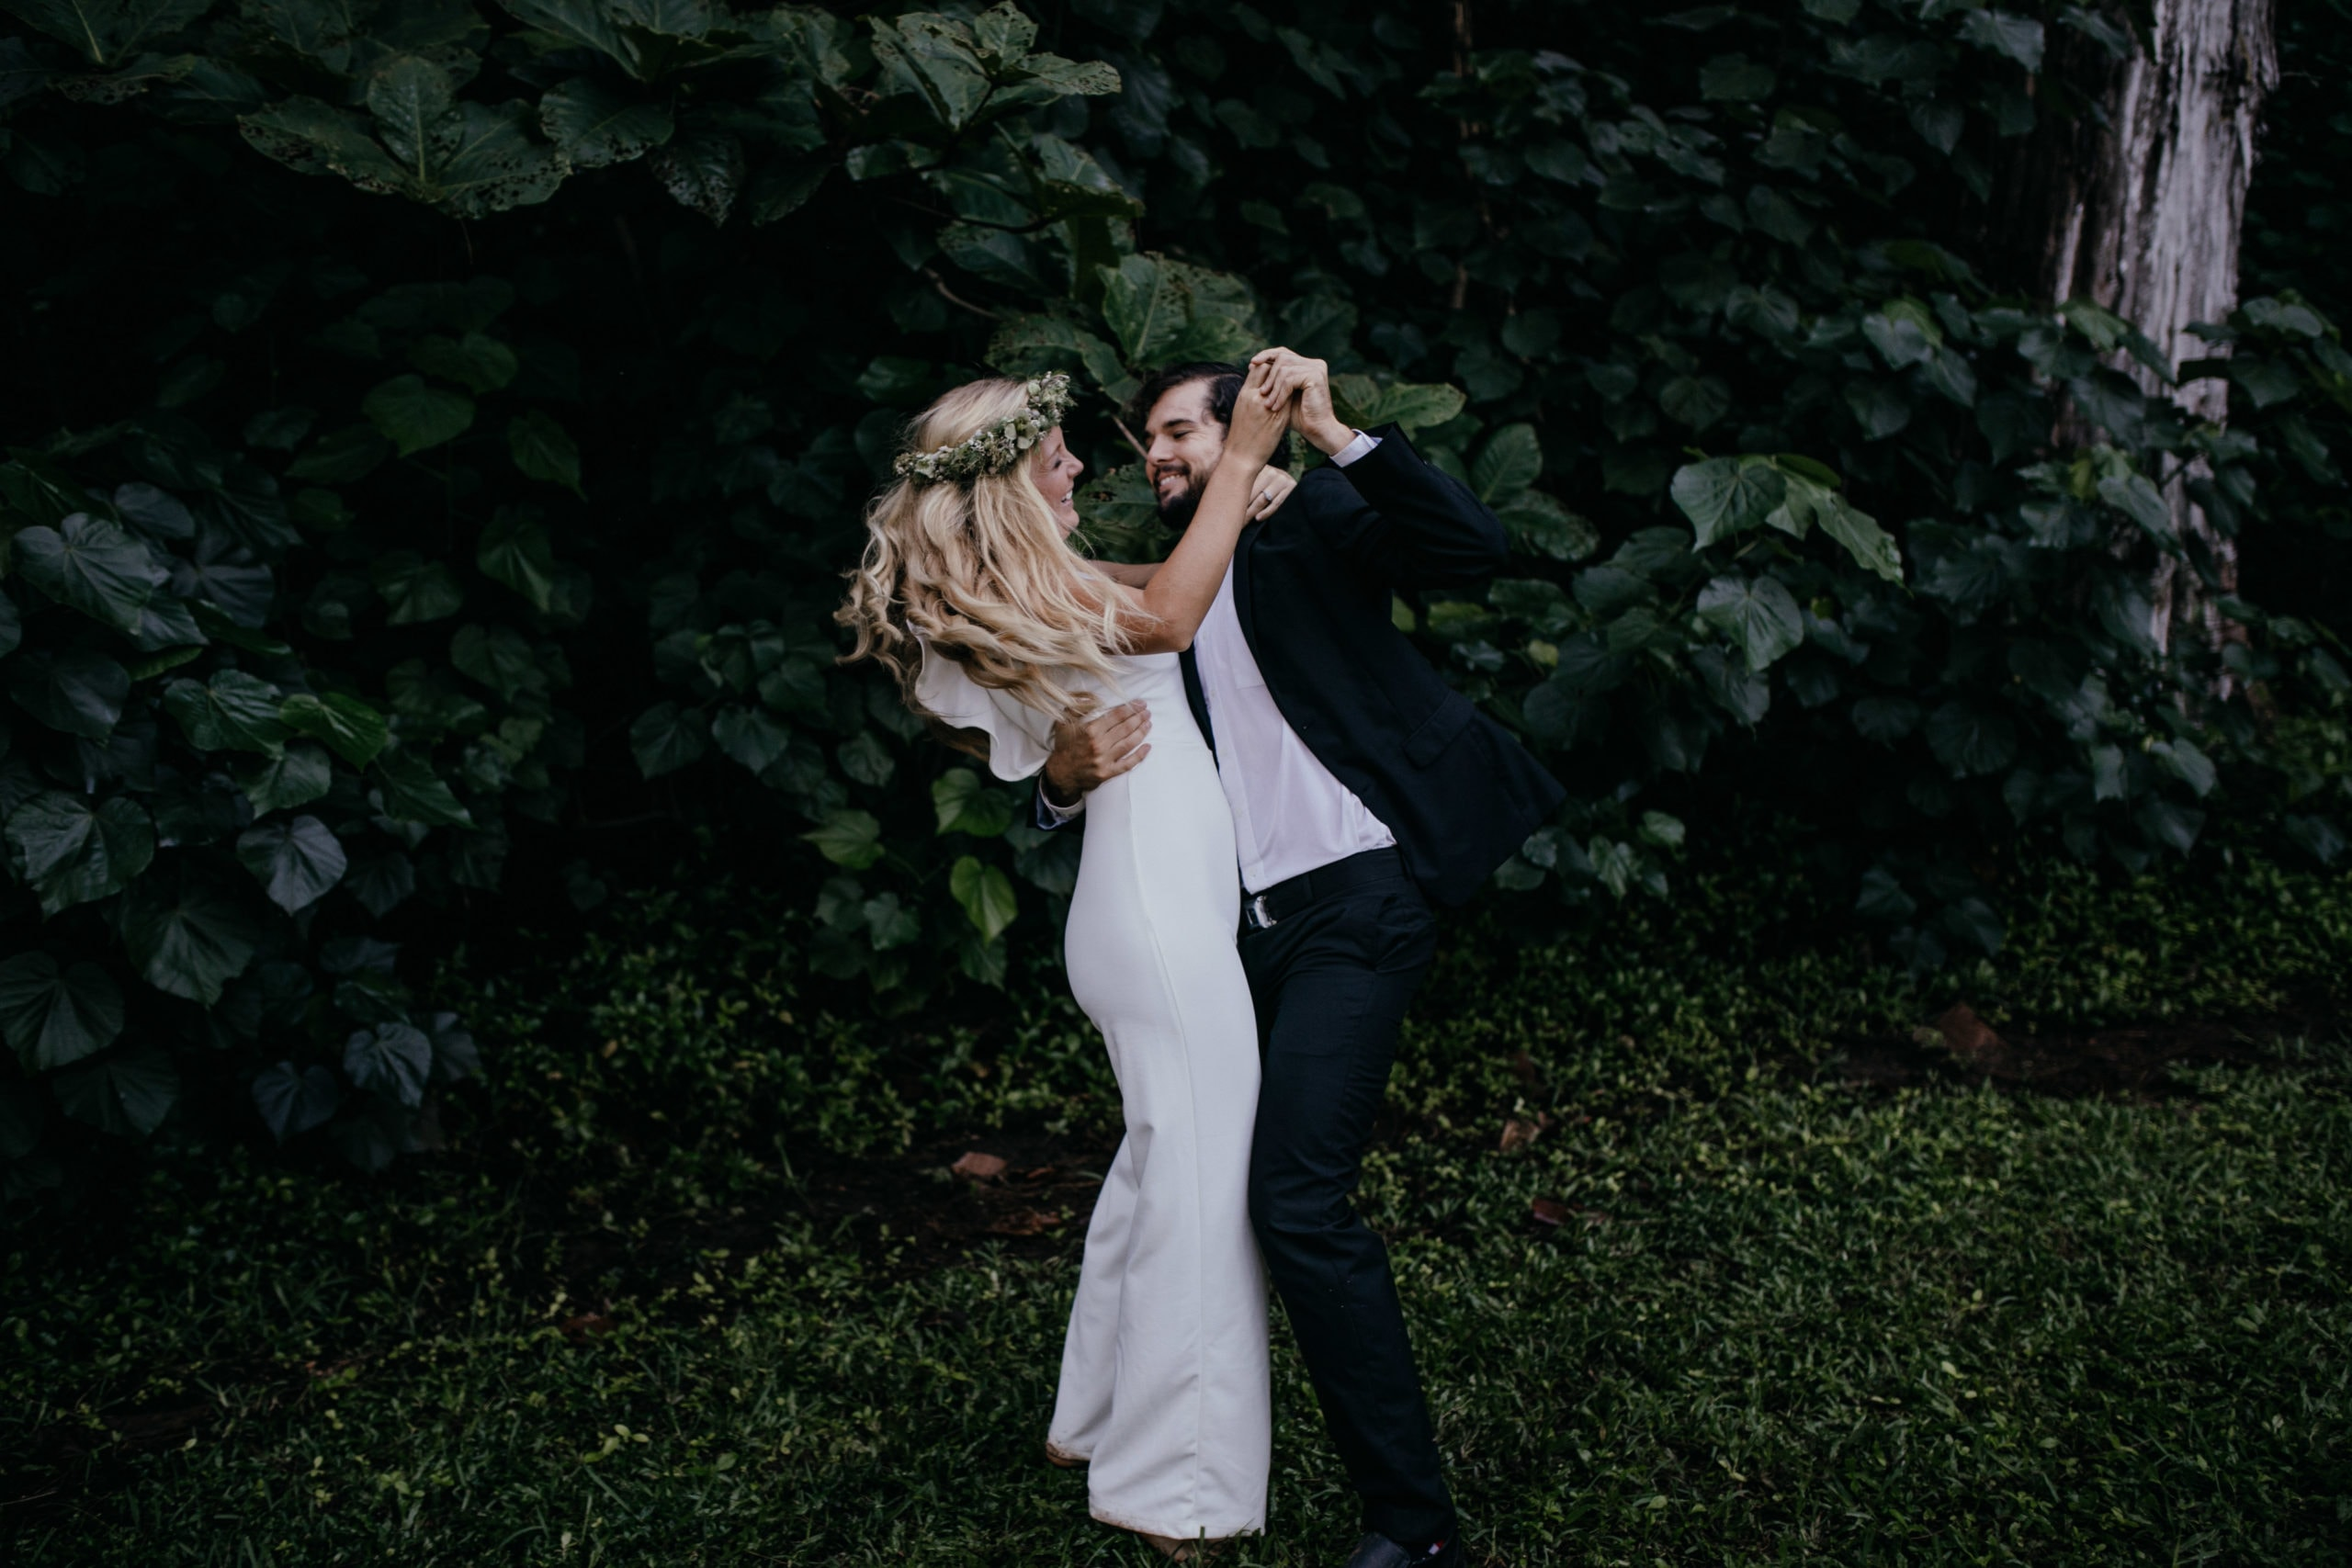 Oahu Wedding Photography, bride and groom dancing in the grass